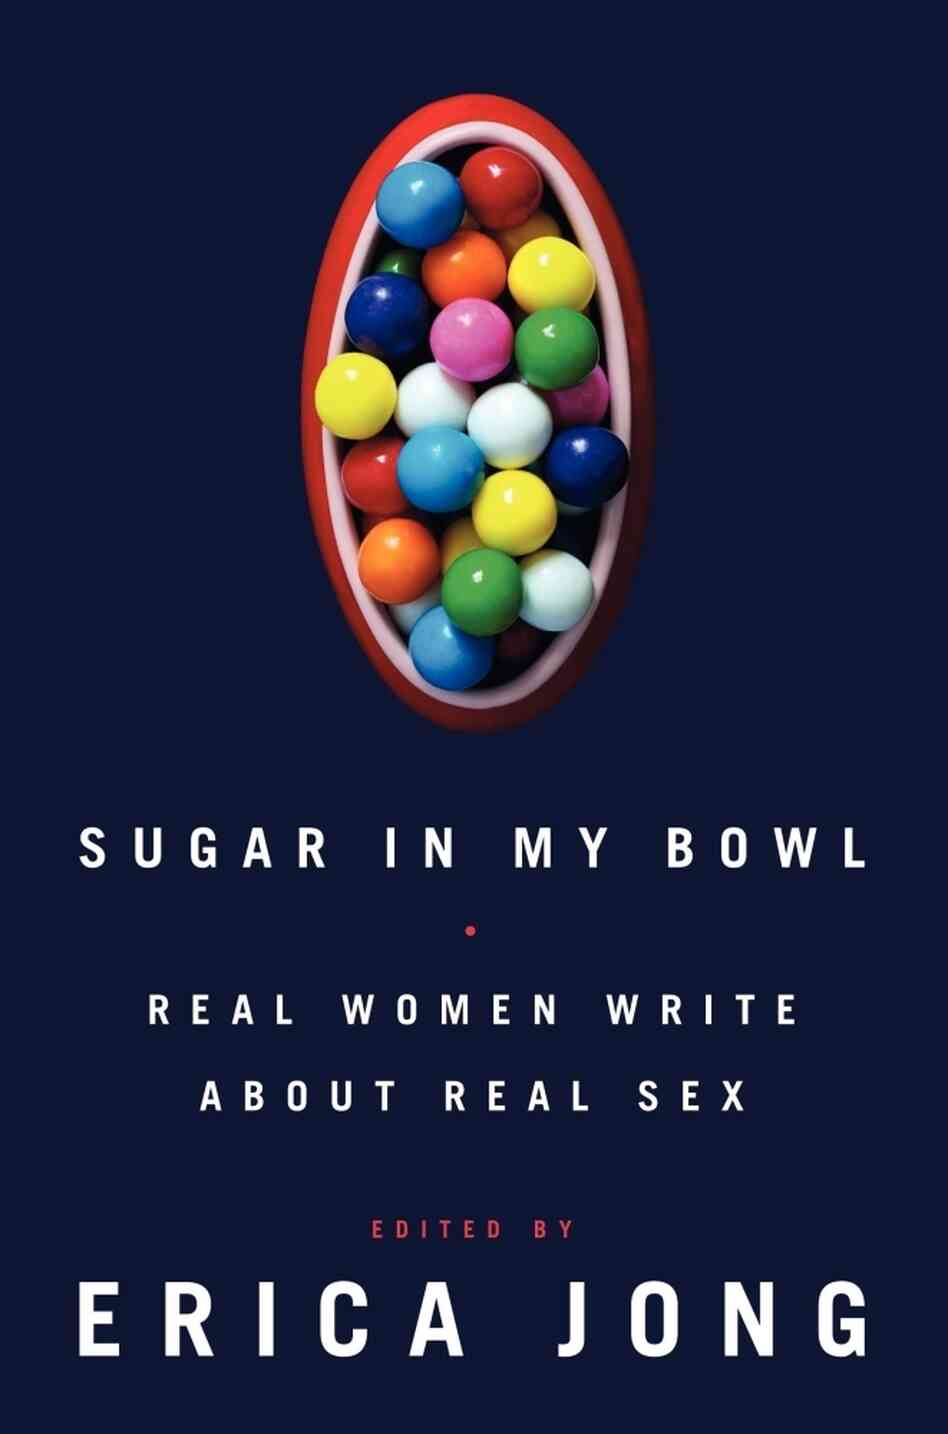 Sugar In My Bowl: Real Women Write About Real Sex, by Erica Jong